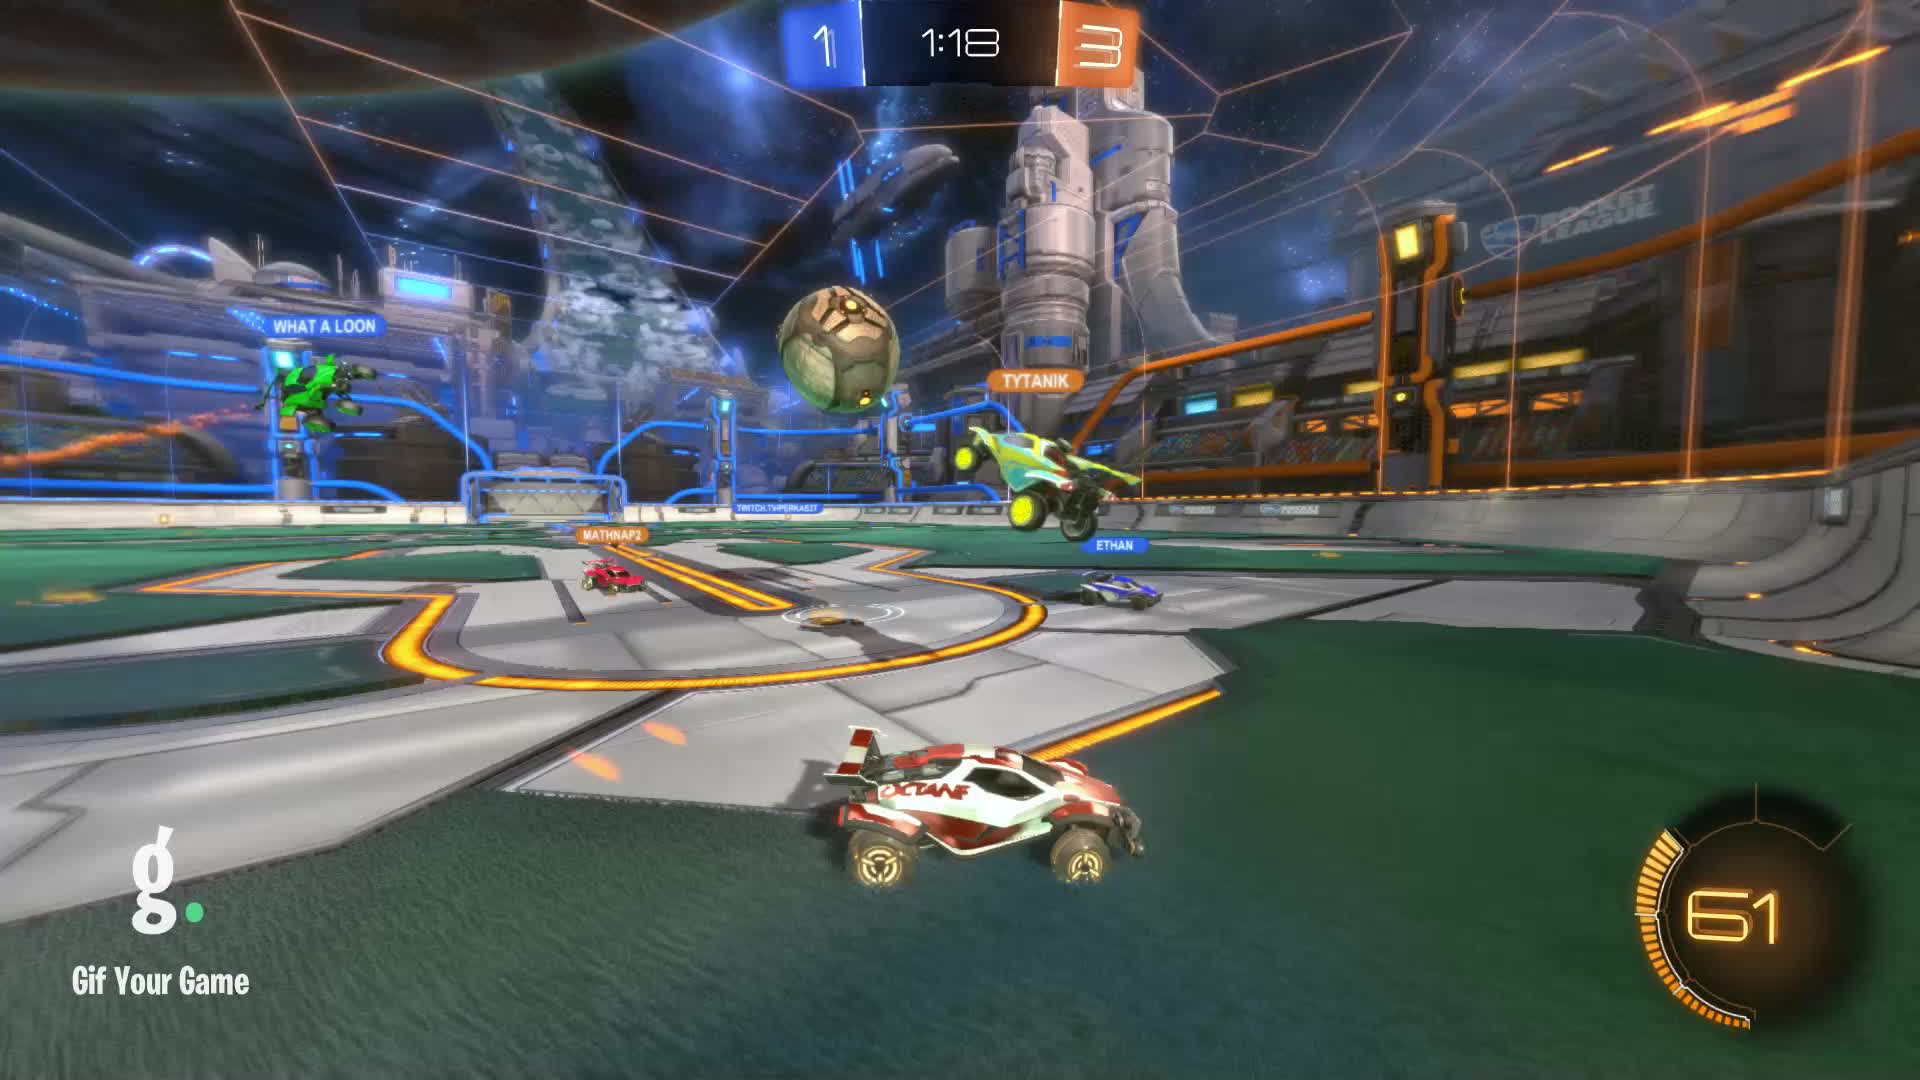 Gif Your Game, GifYourGame, Goal, ItWas...Justified, Rocket League, RocketLeague, Goal 5: ItWas...Justified GIFs